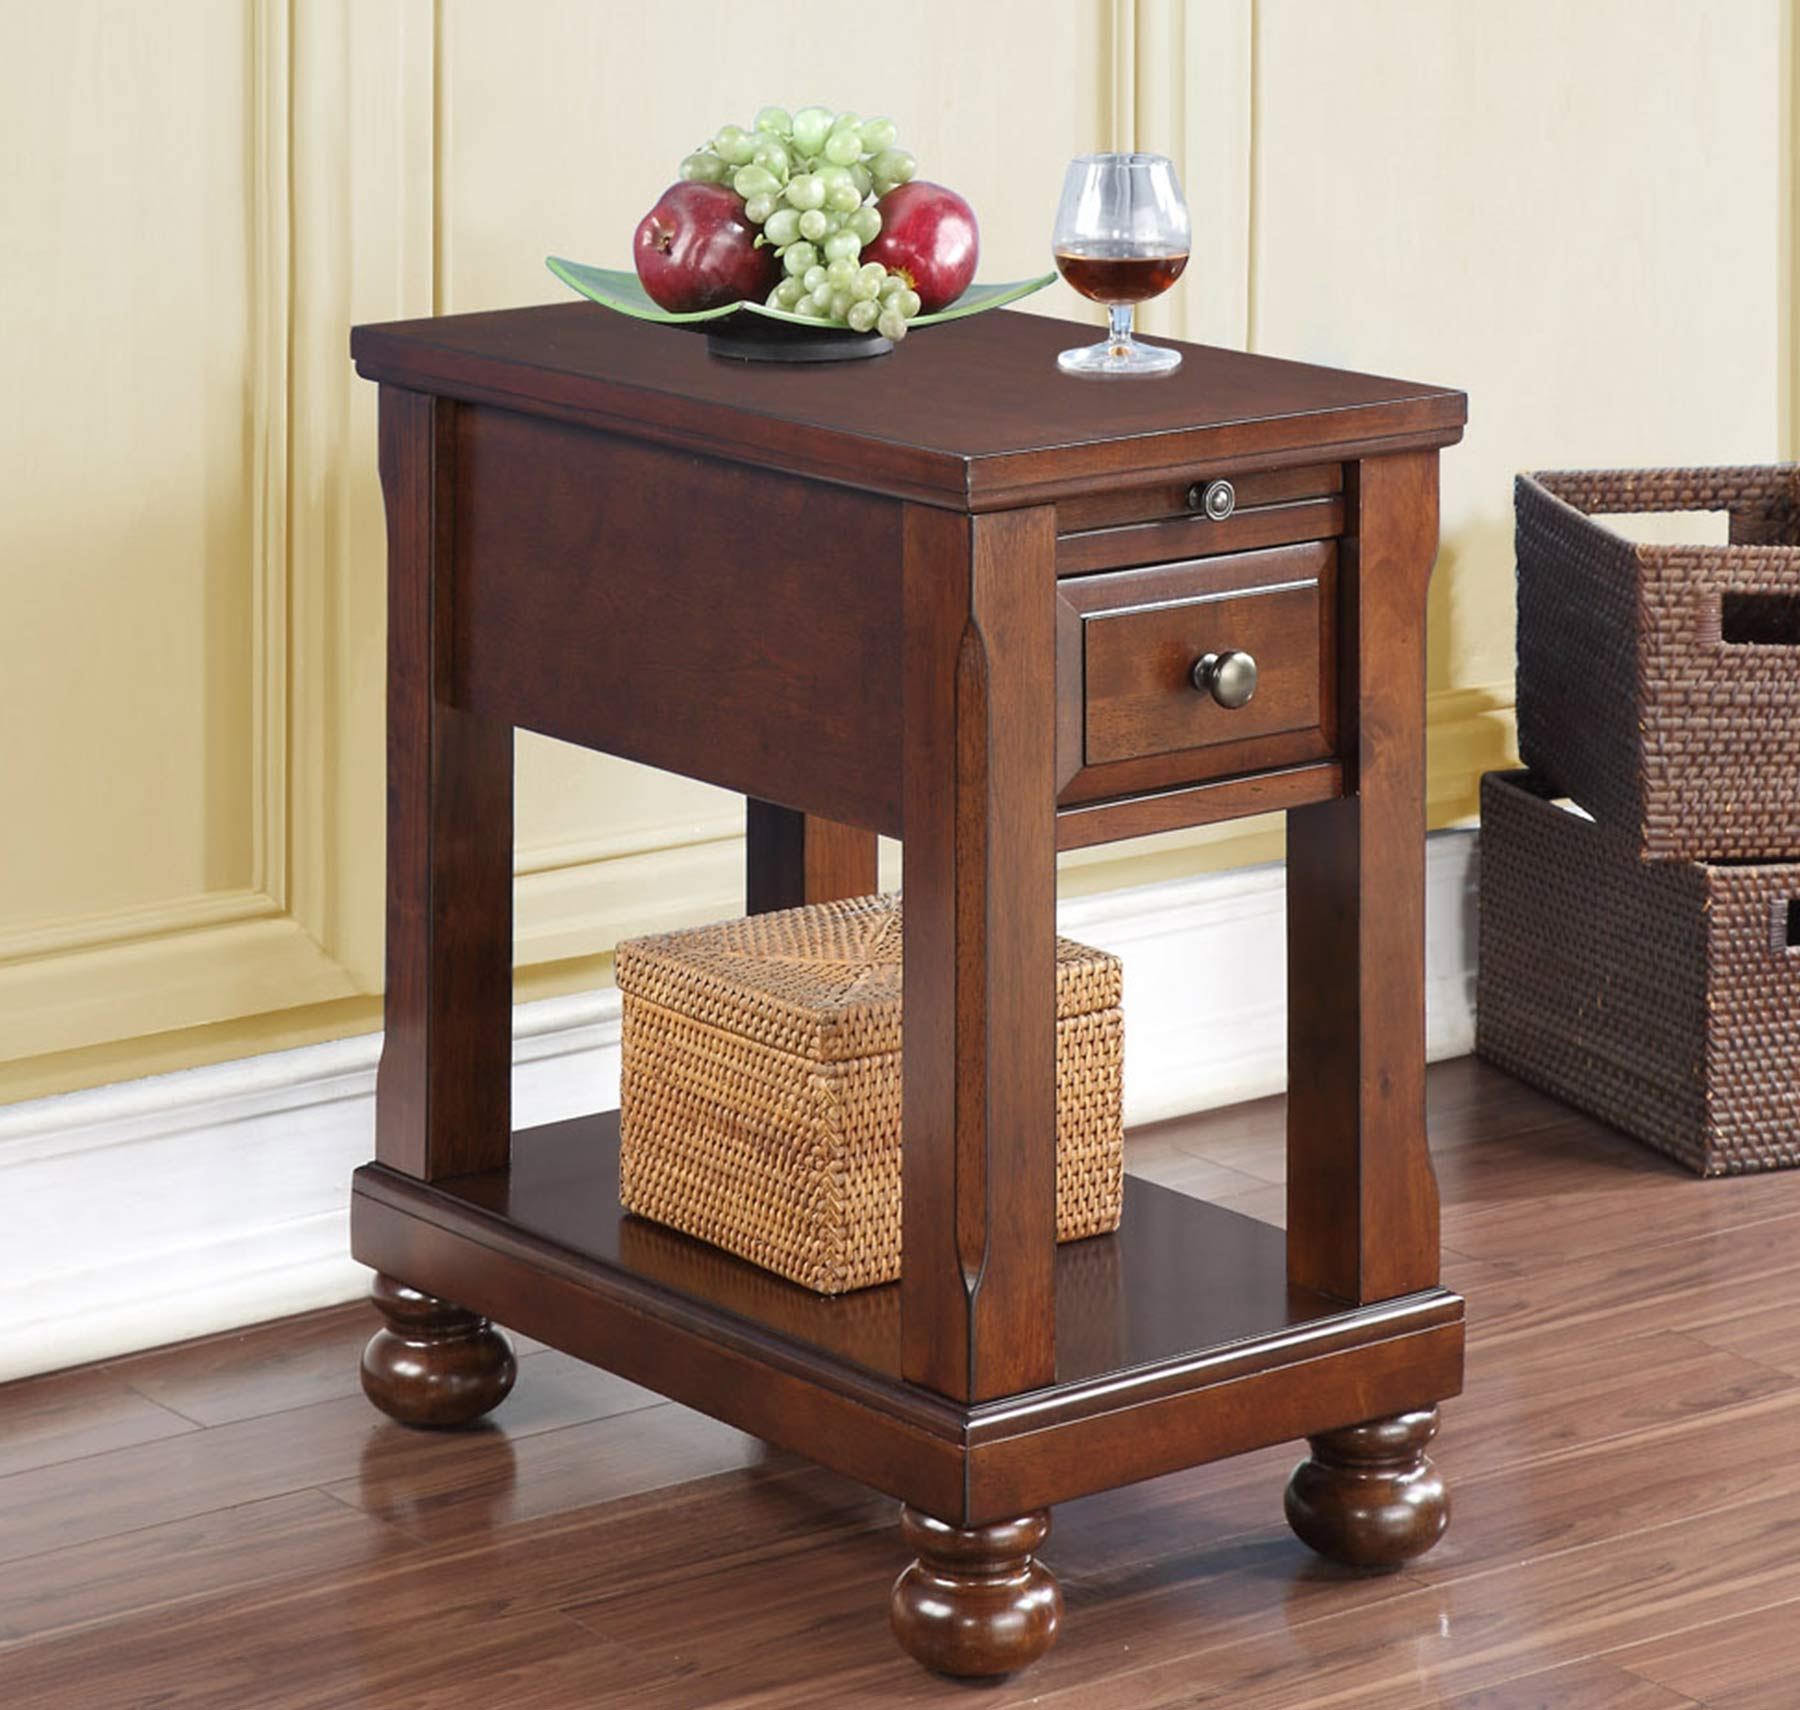 Chairside Table Wpower Outlet Tennessee Enterprises Inc